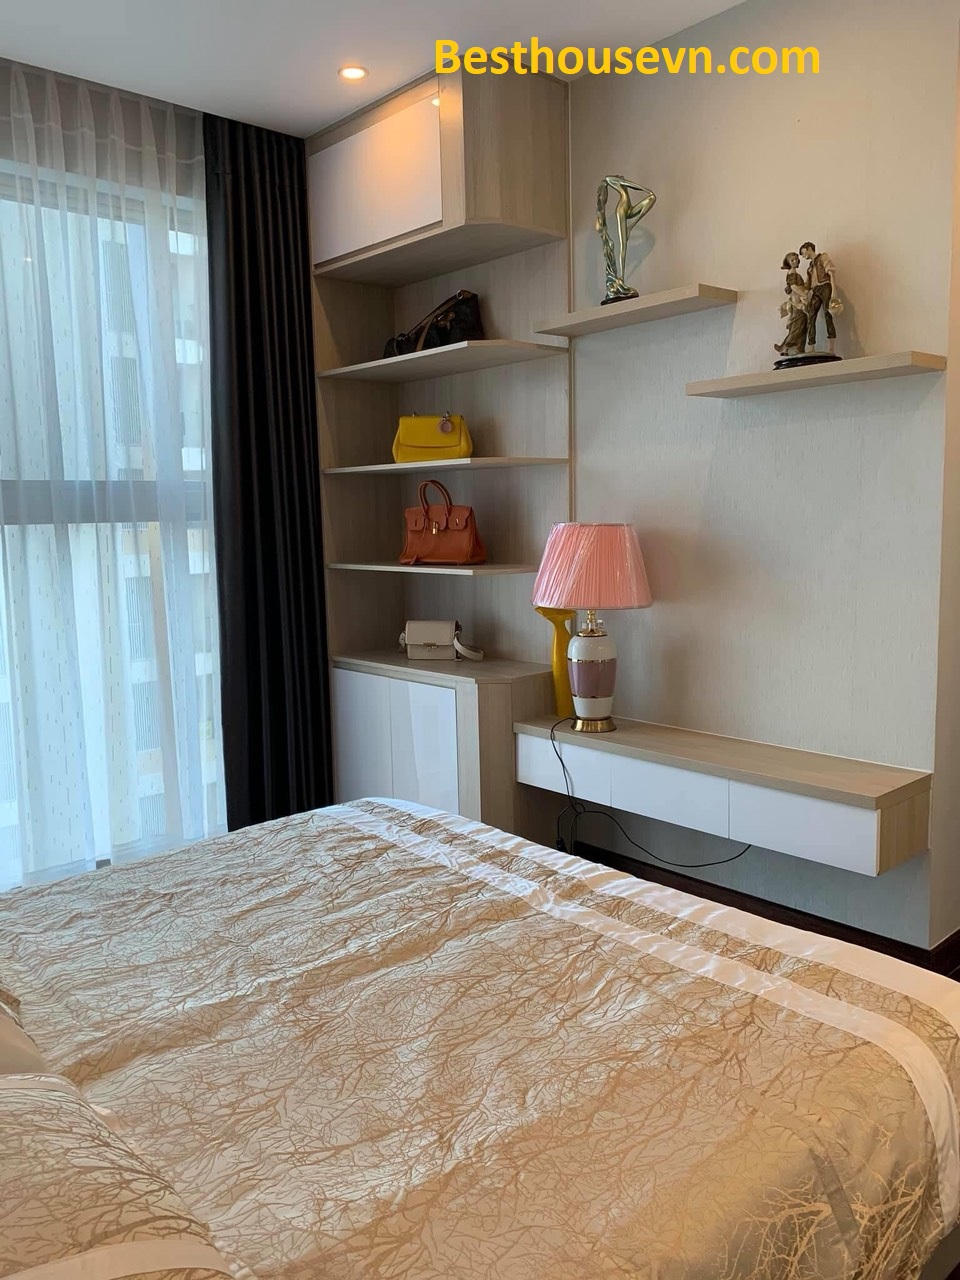 Mitown-89sqm-apartment-for-rent-in-phu-my-hung-district-7